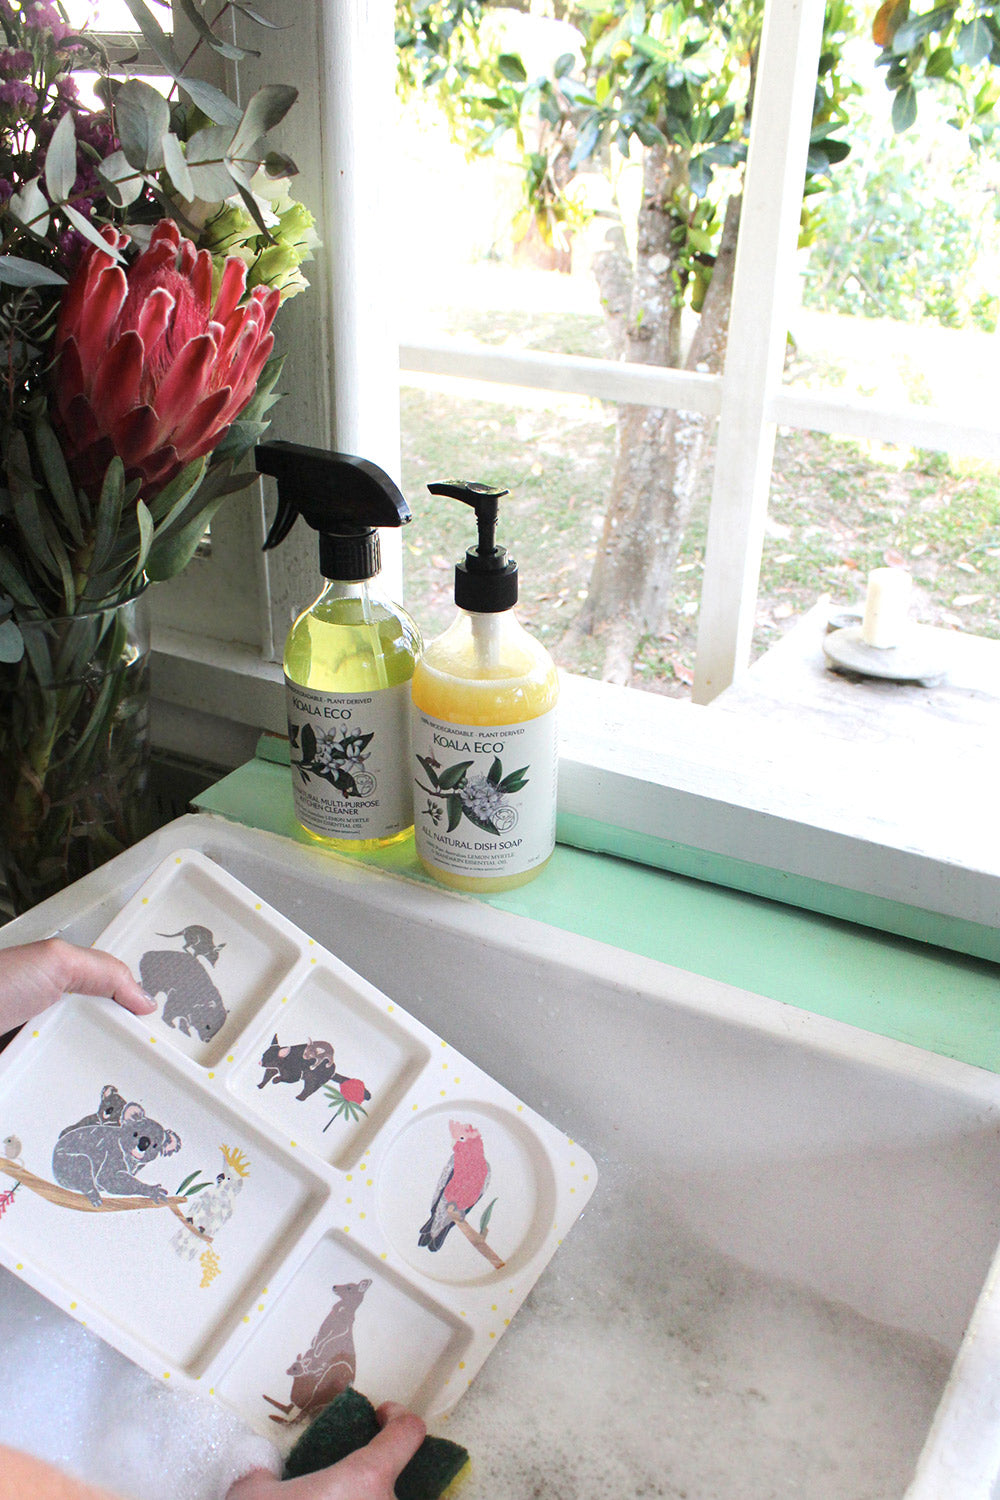 Testing the Koala Eco All Natural Dish Soap on our bamboo dinnerware products